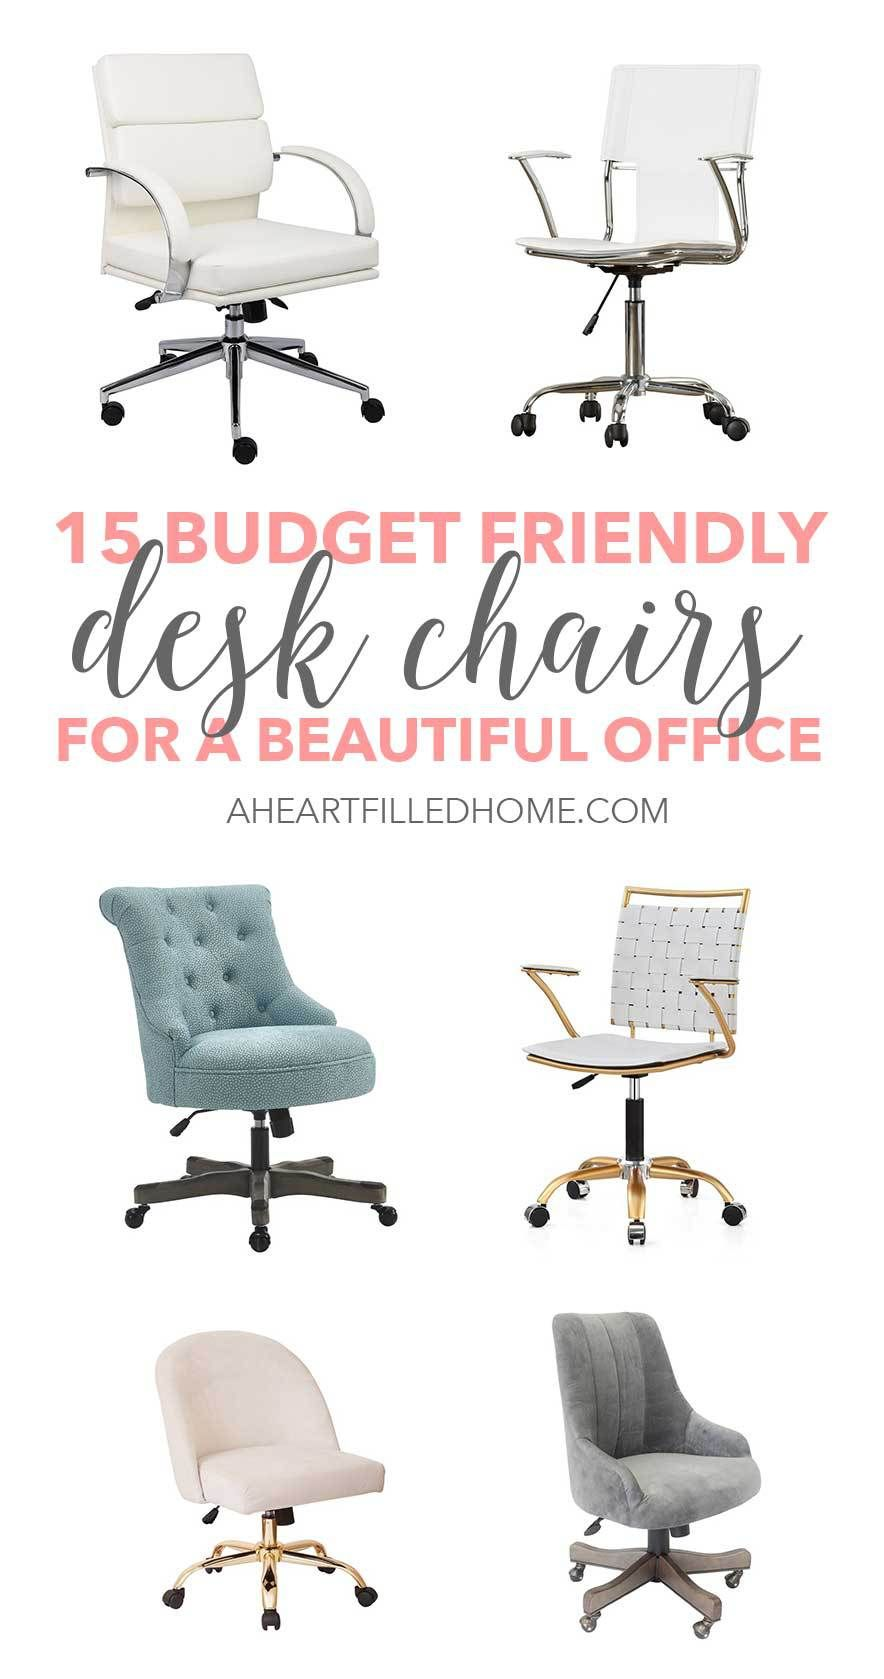 15 Budget Friendly Desk Chairs Fora Beautiful Office Best Office Chair Desk Chair Comfy Home Office Chairs